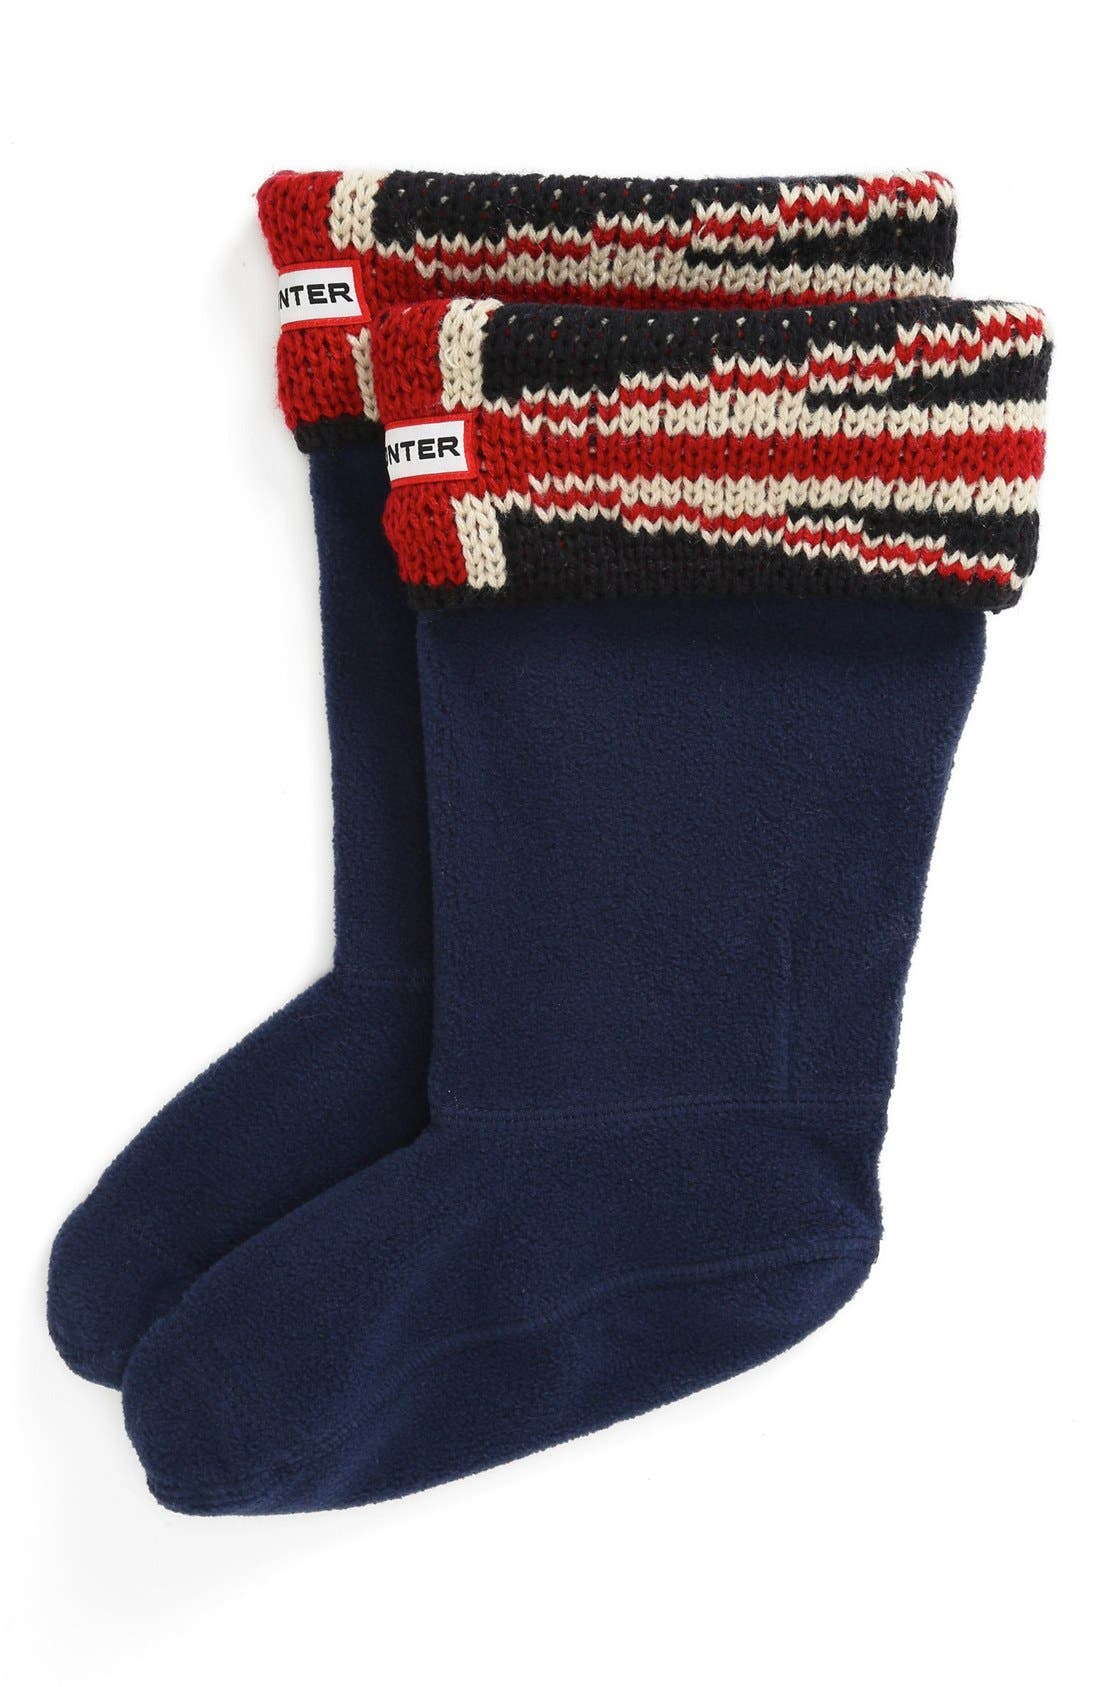 'Brit' Welly Socks,                             Main thumbnail 1, color,                             410